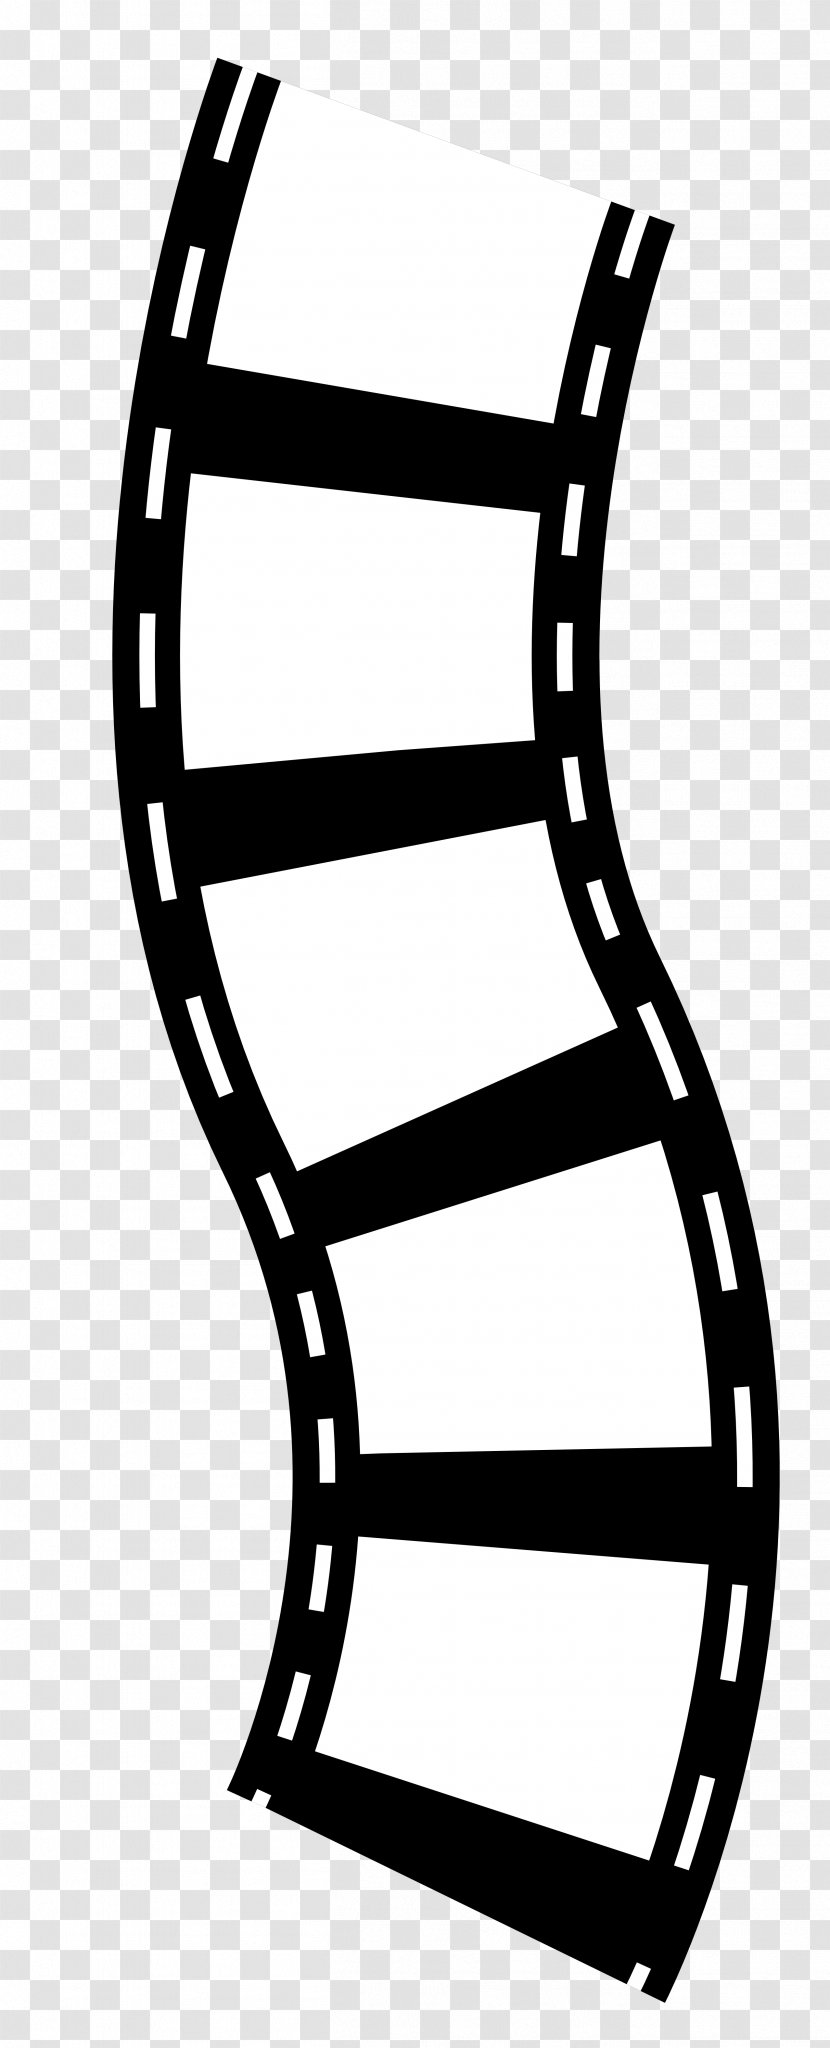 Photographic Film Reel Clip Art - Black And White - Roll Cliparts Transparent PNG